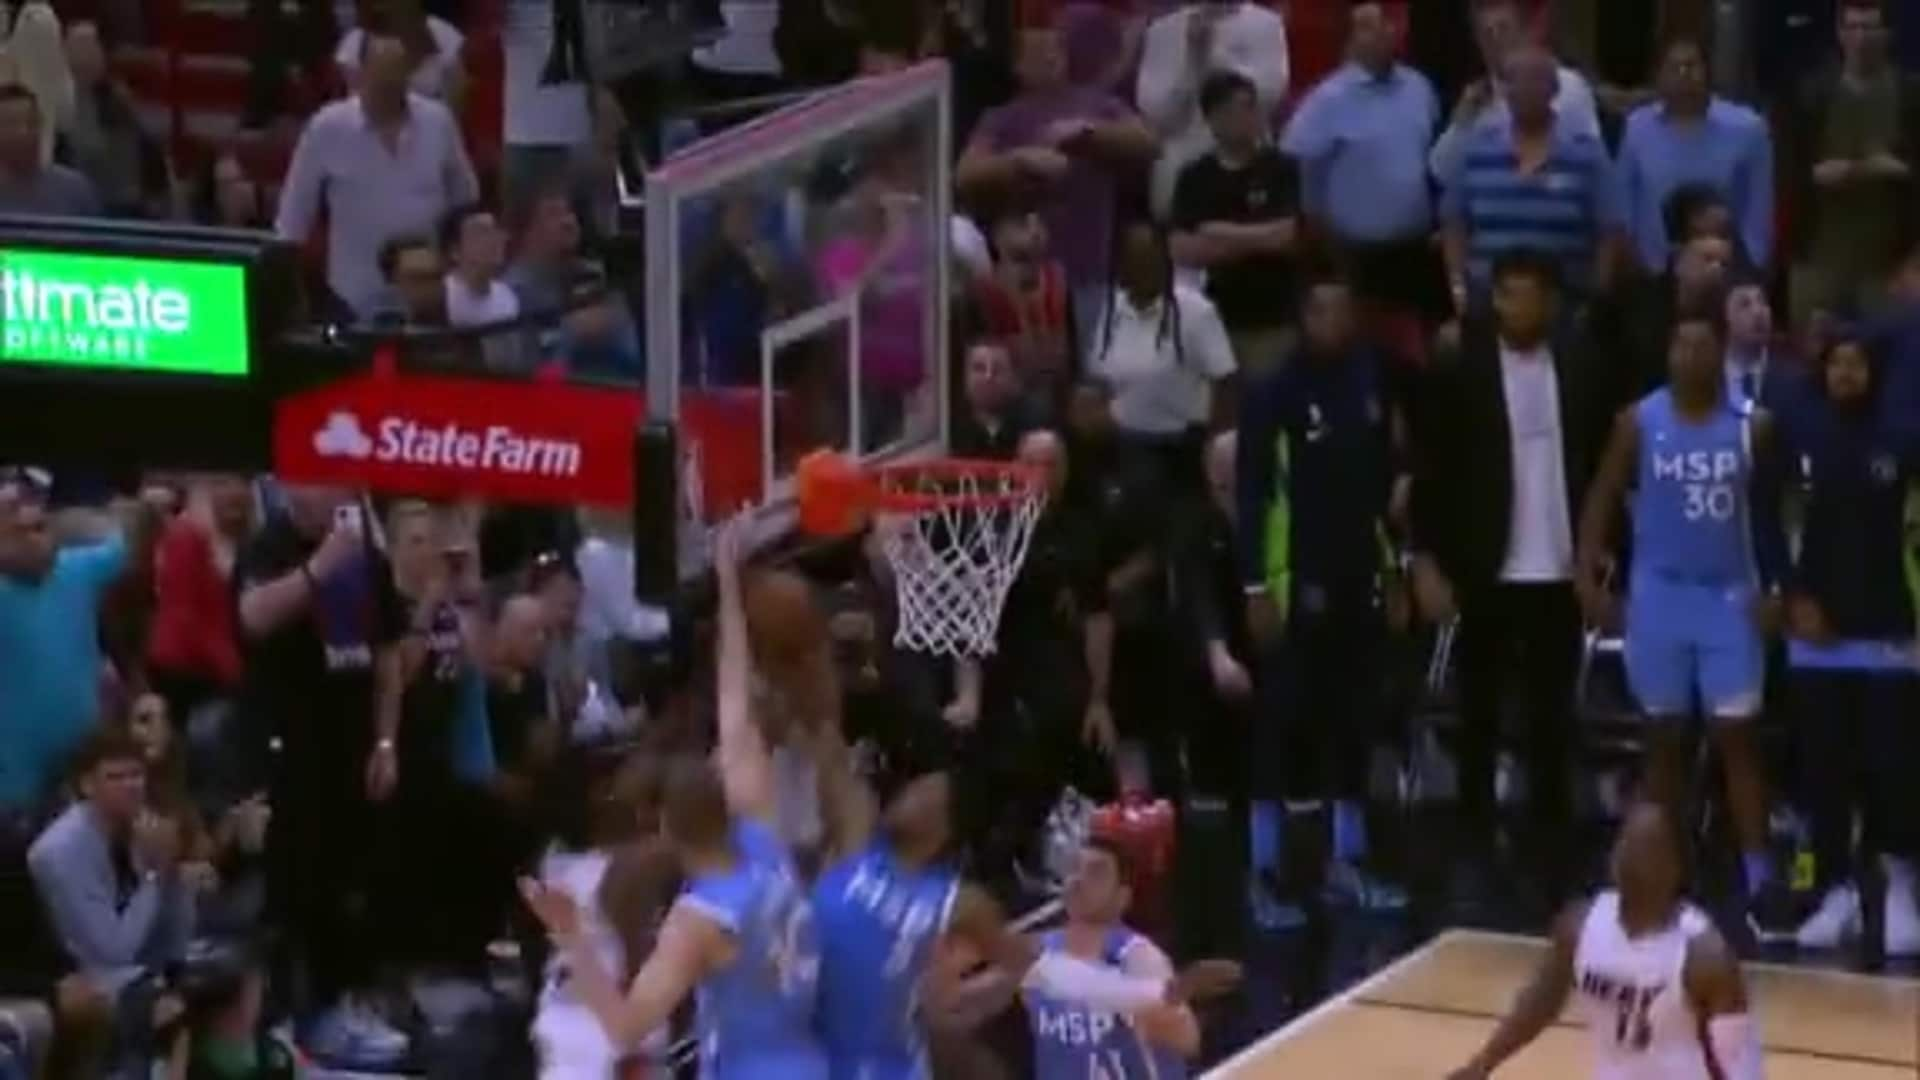 D'Angelo Russell Blocks Jimmy Butler To Seal Win For Timberwolves (2.26.20)